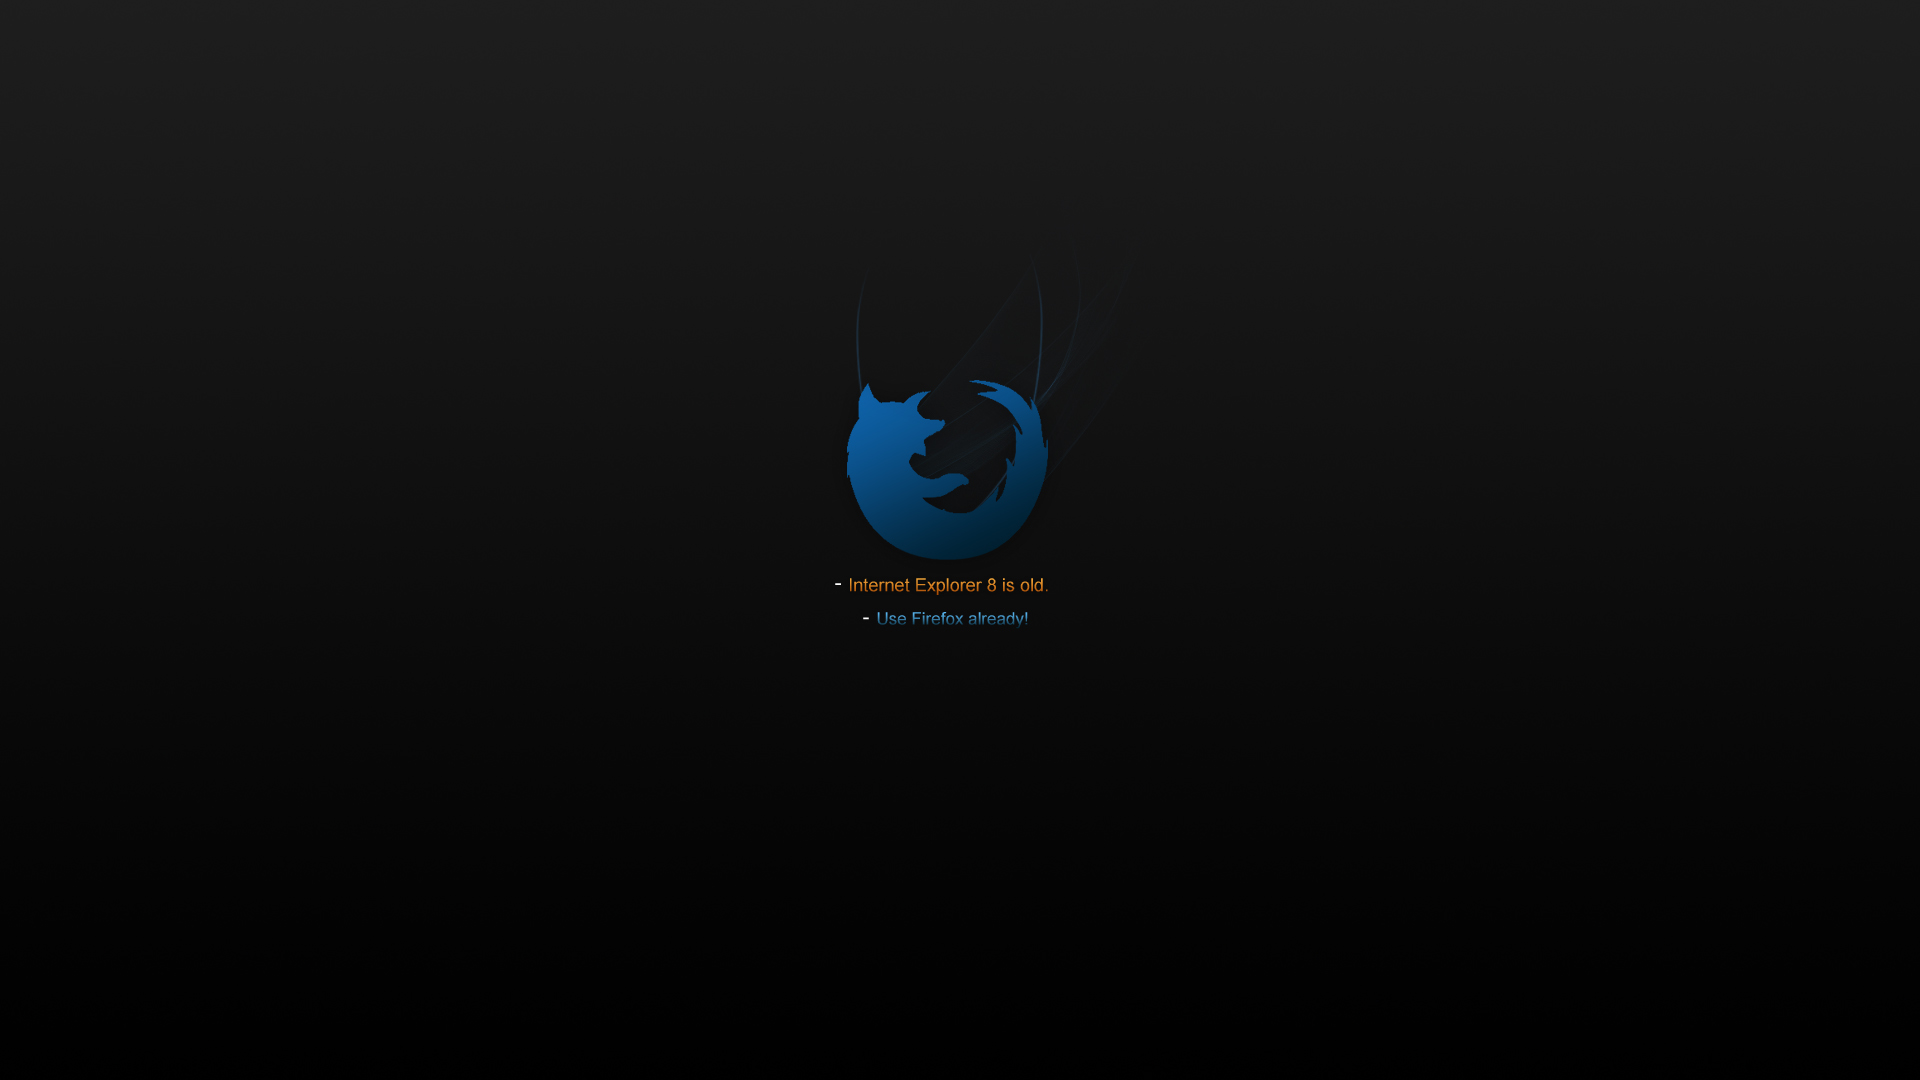 use mozilla firefox, secondberkan12 on deviantart